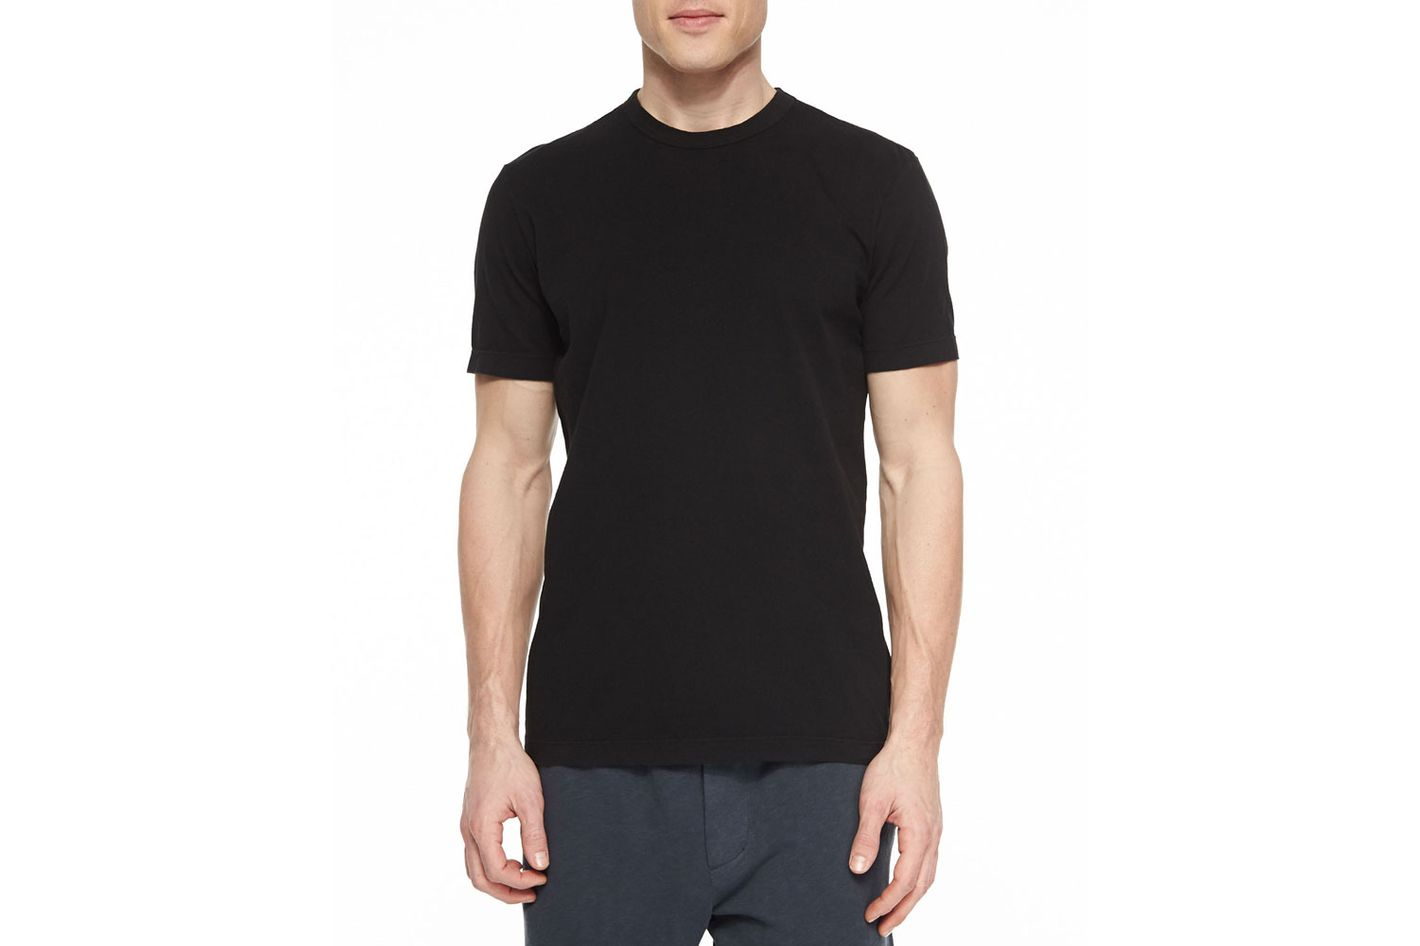 The best black t shirt for men according to nick wooster for Make photo t shirt online